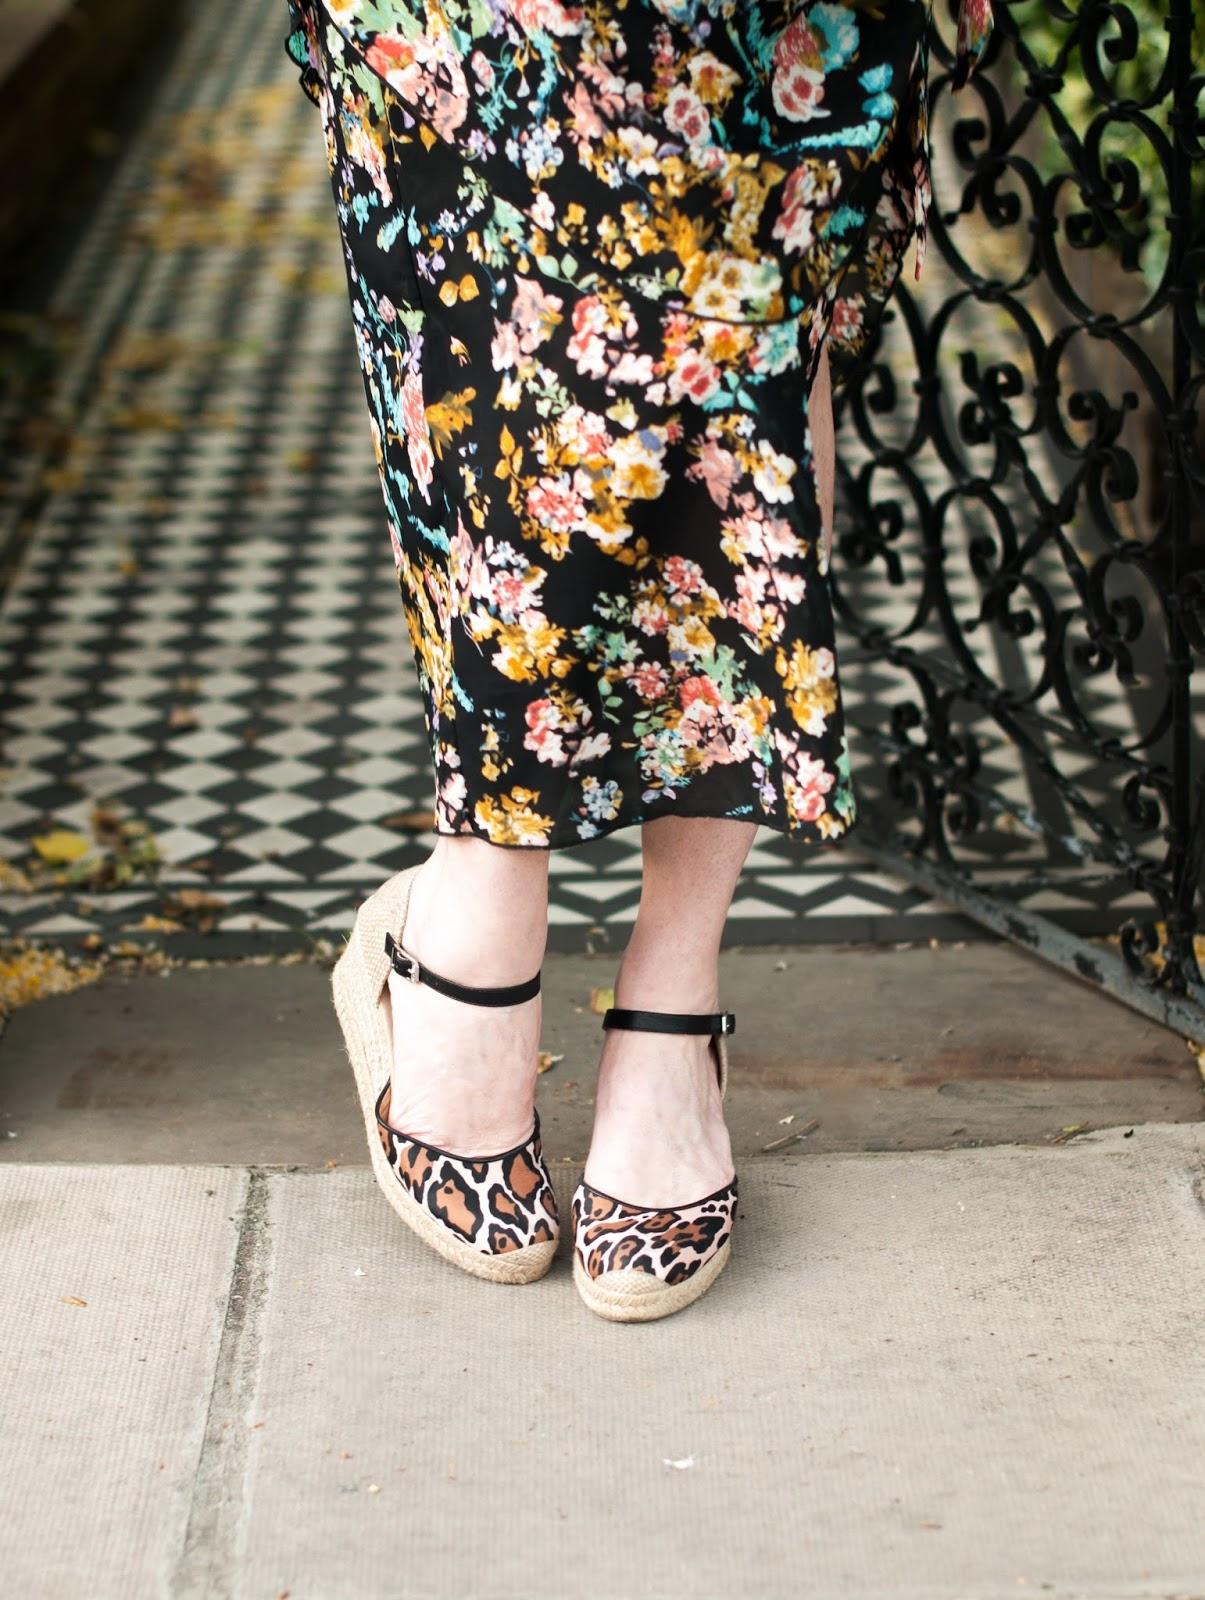 Floral draped vintage style dress with leopard print wedge espadrilles, over 40 style